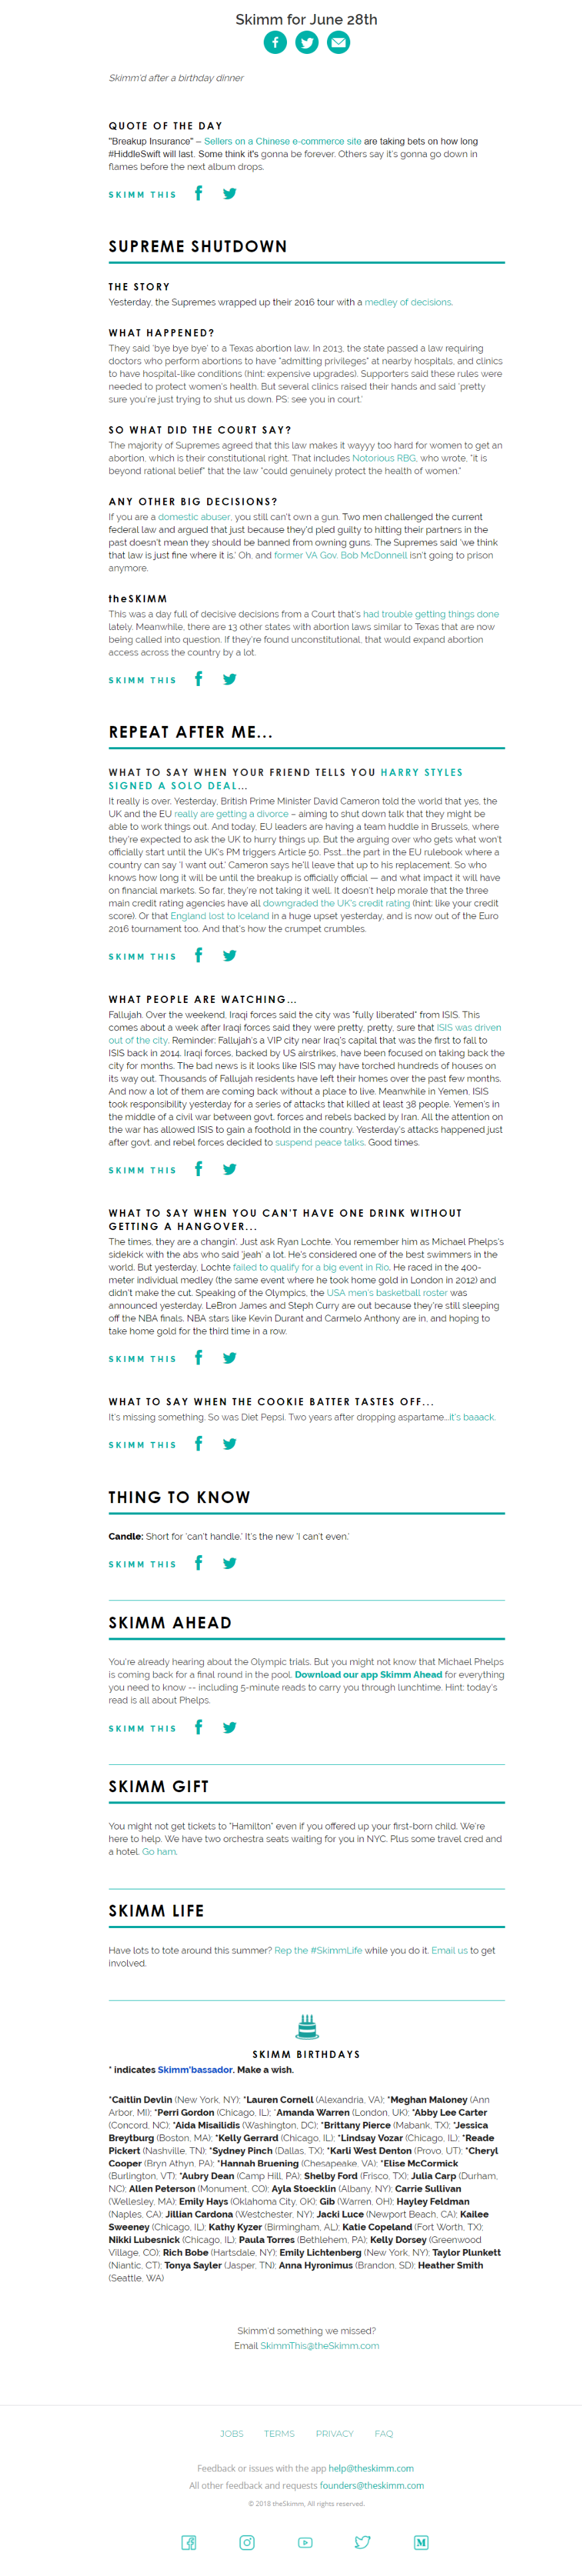 The Skimm newsletter